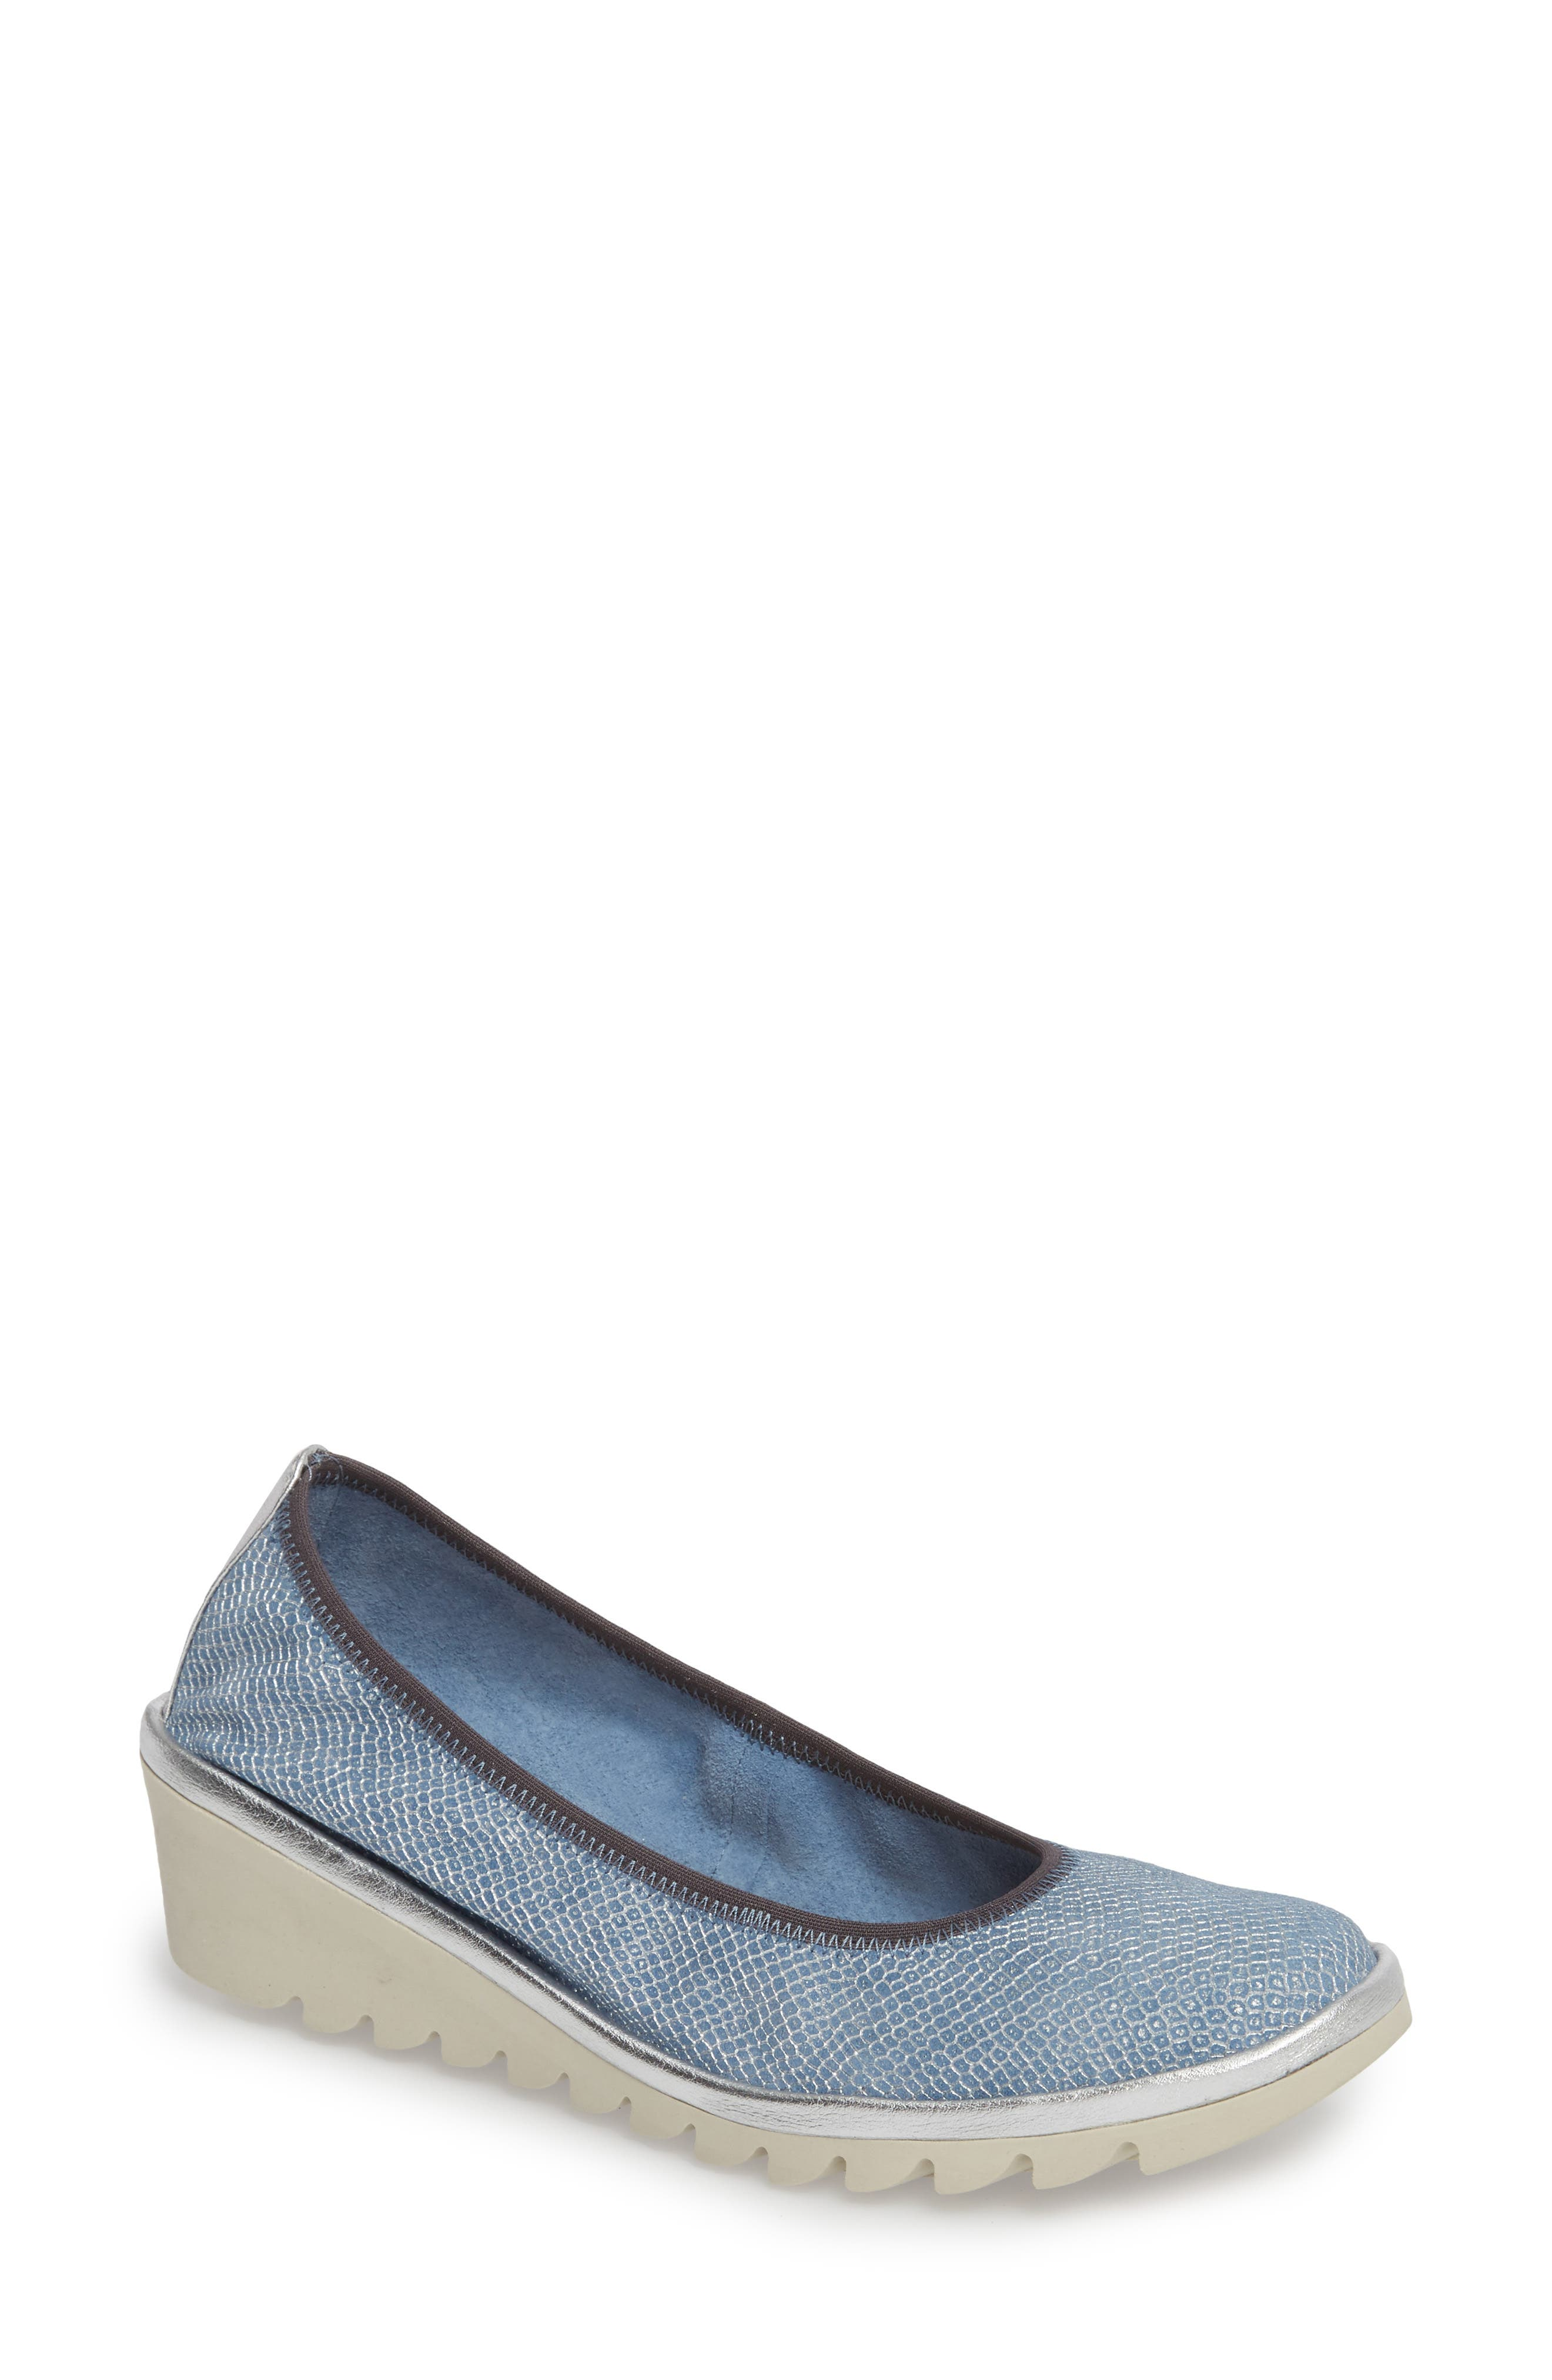 Mel A Drama Wedge Skimmer,                             Main thumbnail 1, color,                             Denim Leather